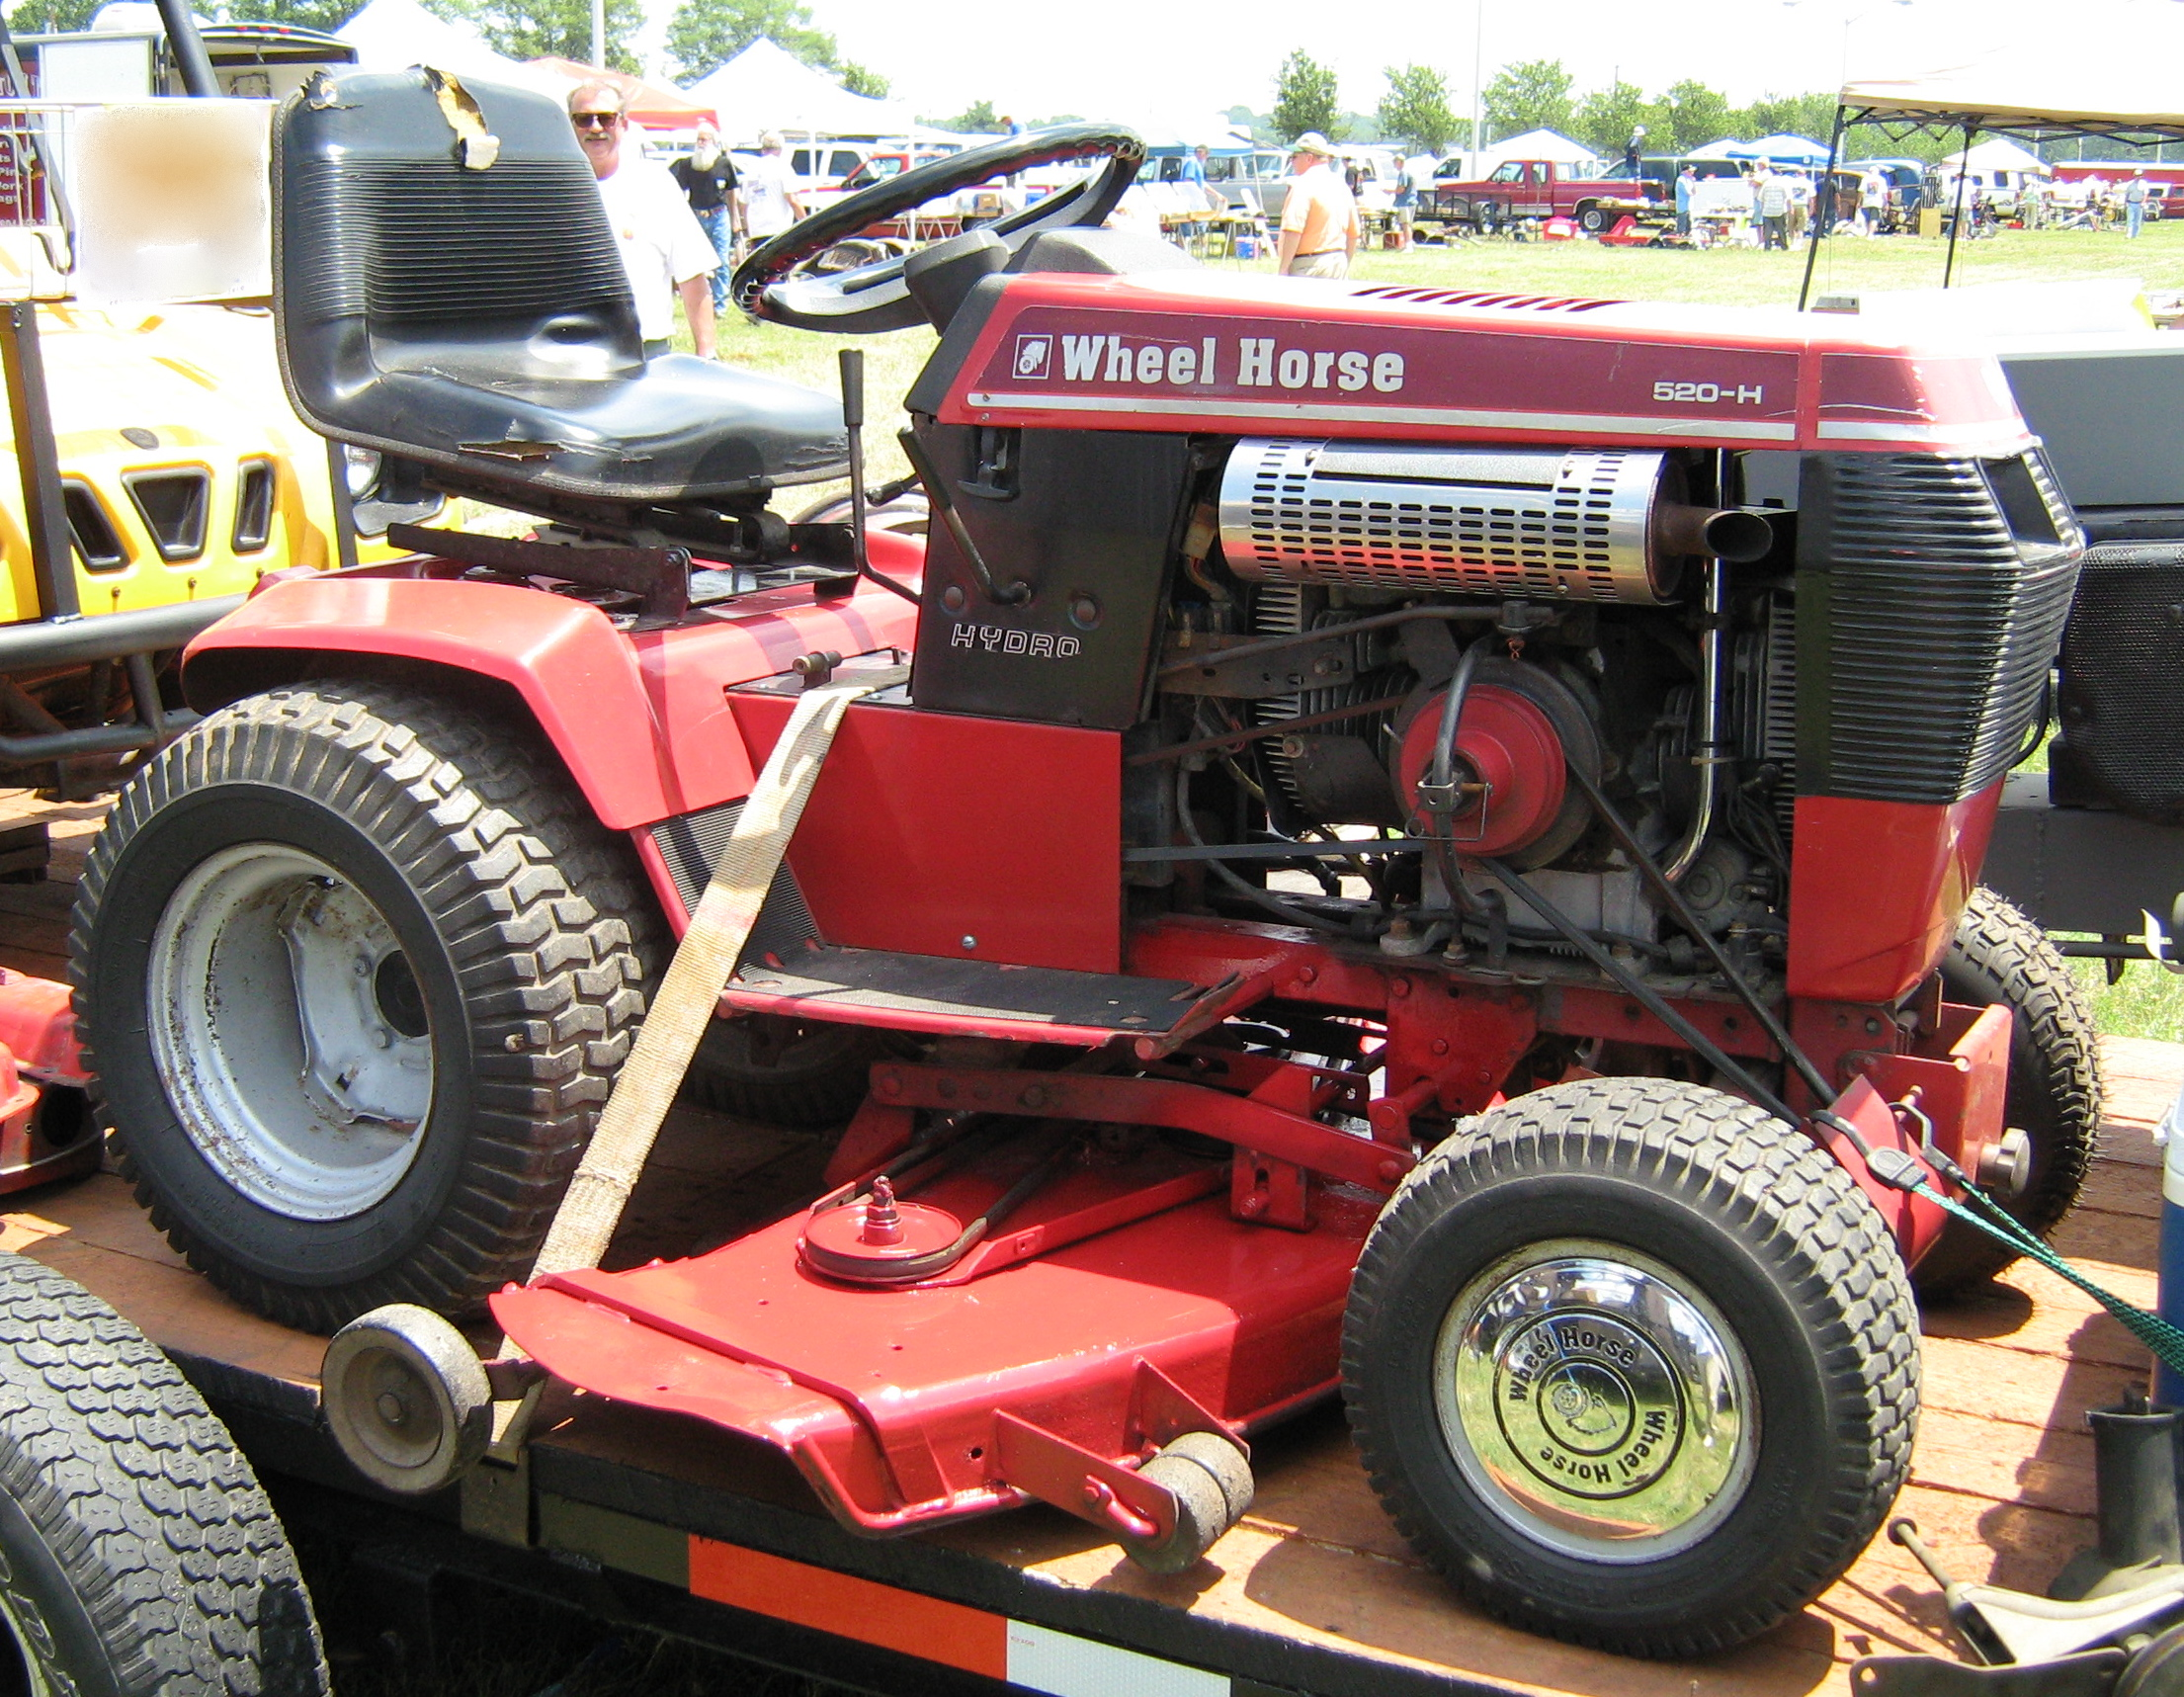 wiring lawn diagram an garden repair engine john deere onan tractor of manual my service parts